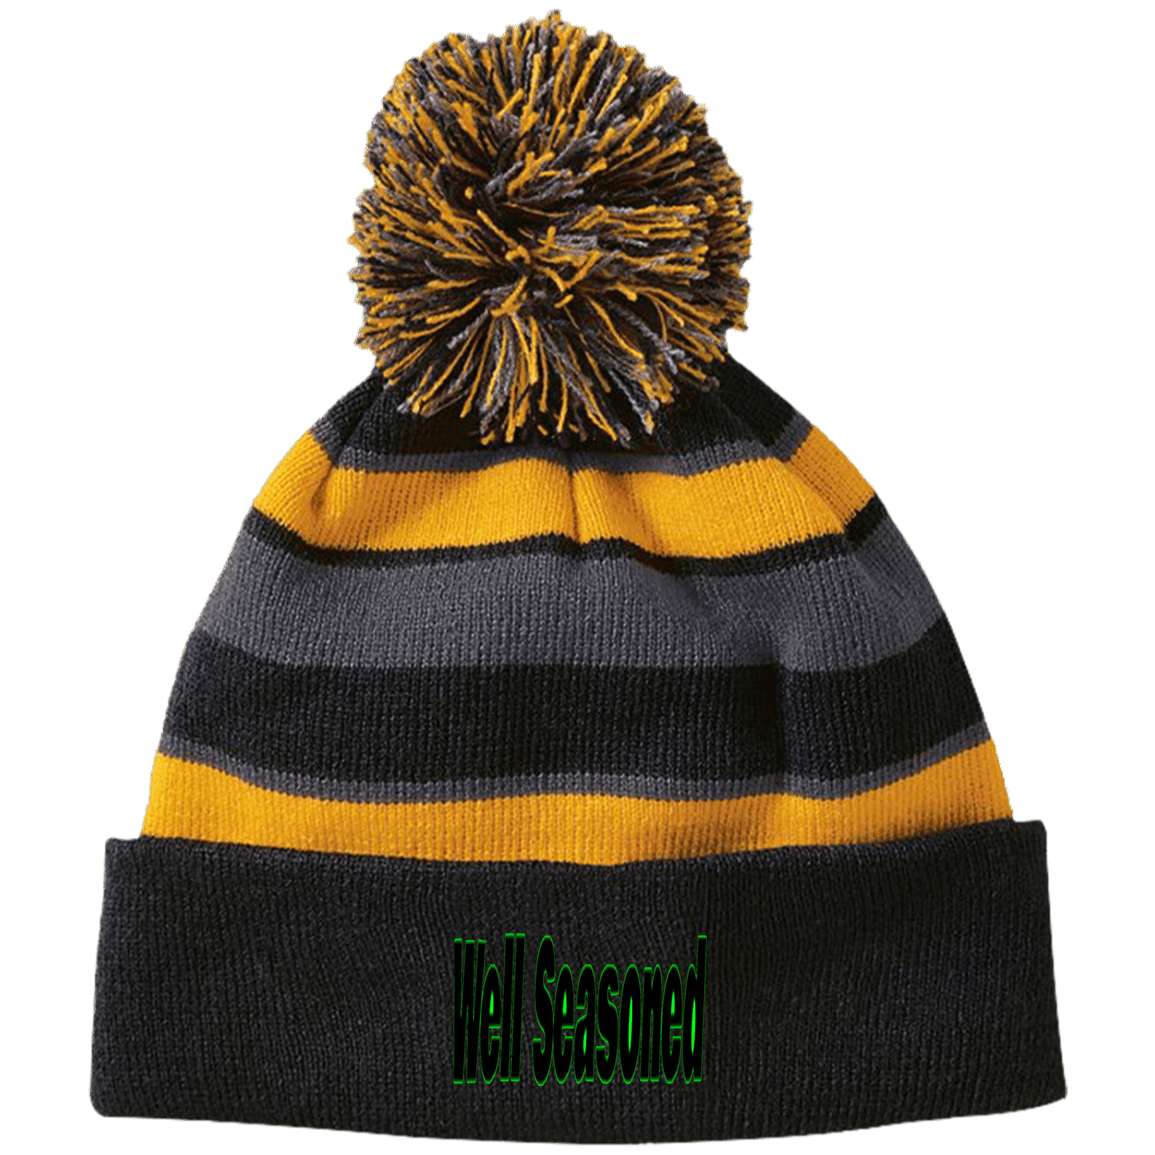 Well Seasoned Holloway Striped Beanie with Pom - Tie-Fly